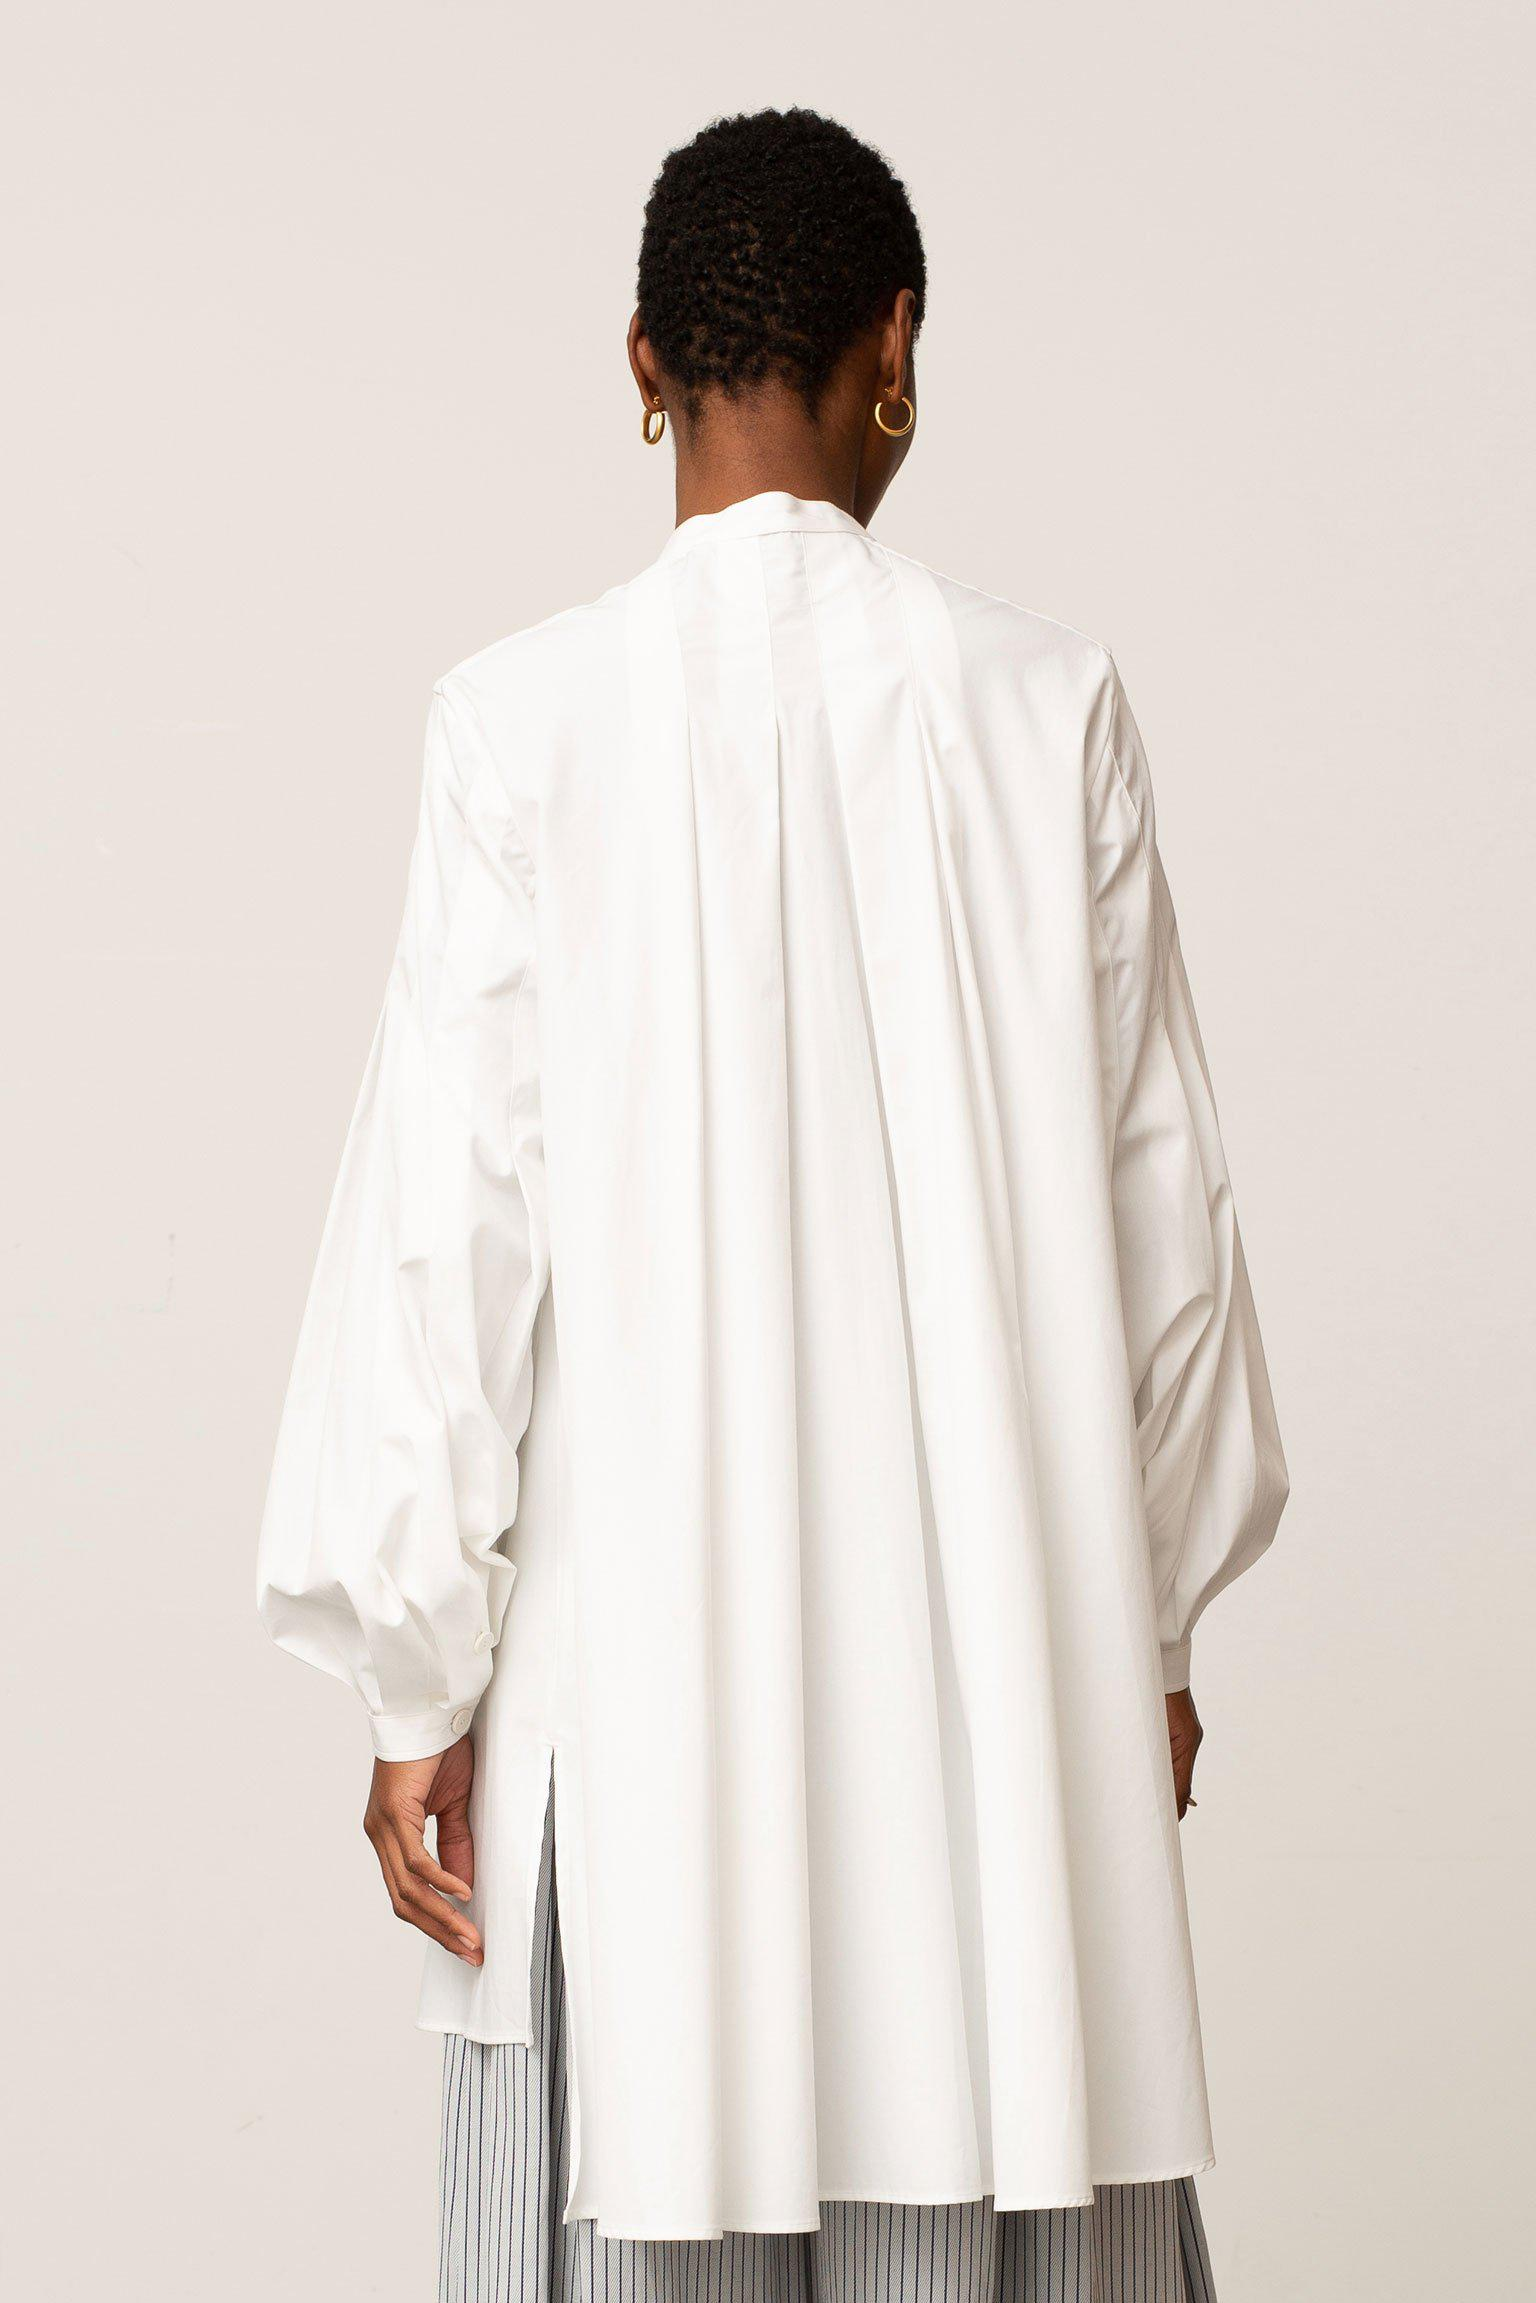 COURAGEOUS HEARTS TUNIC 3